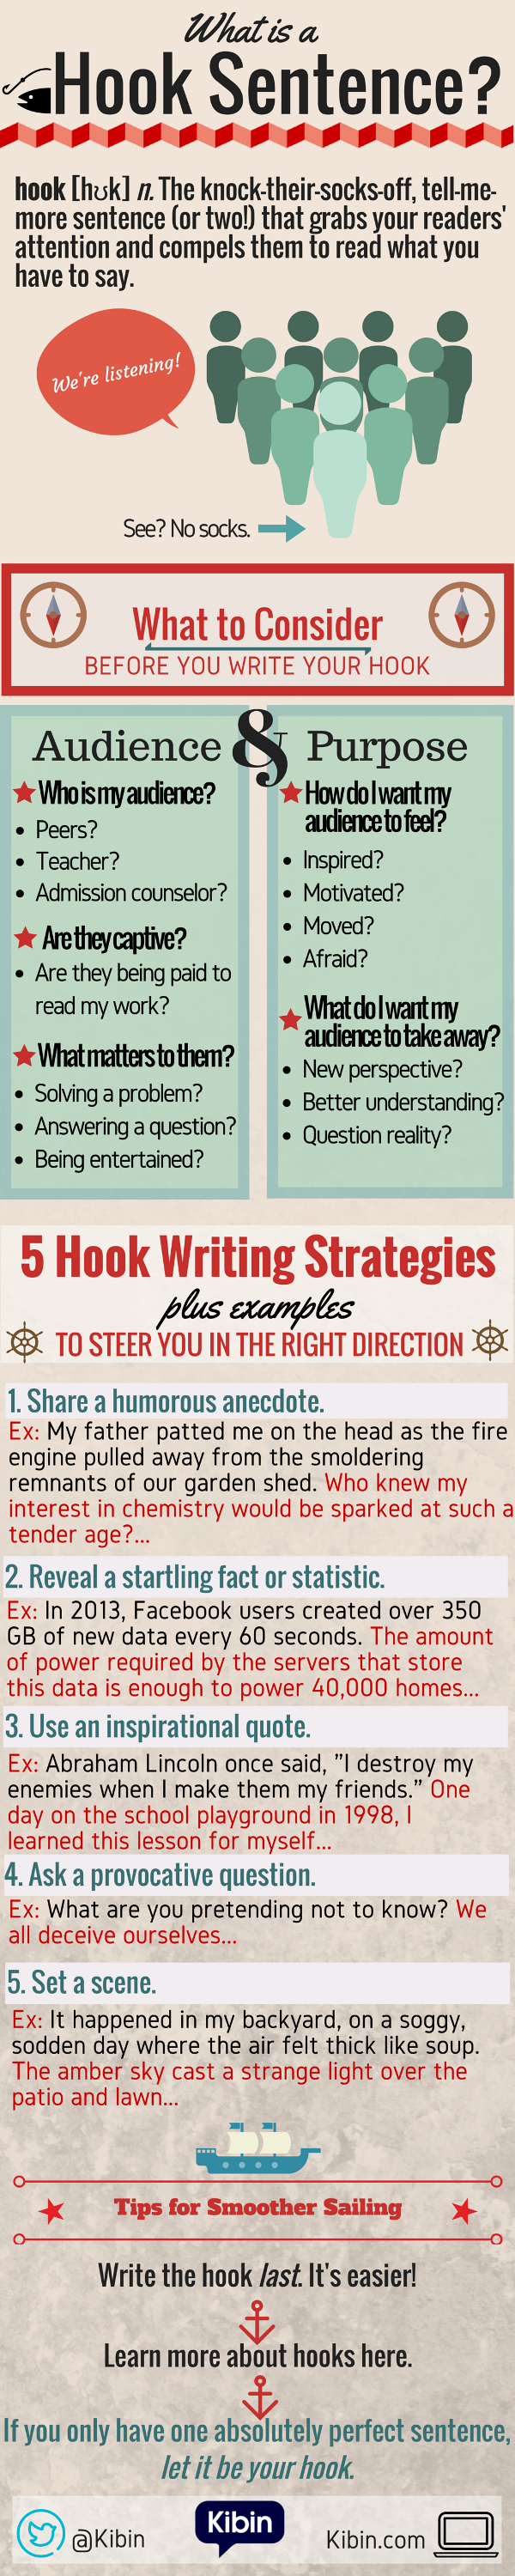 what is a hook sentence infographic essay writing what is a hook sentence